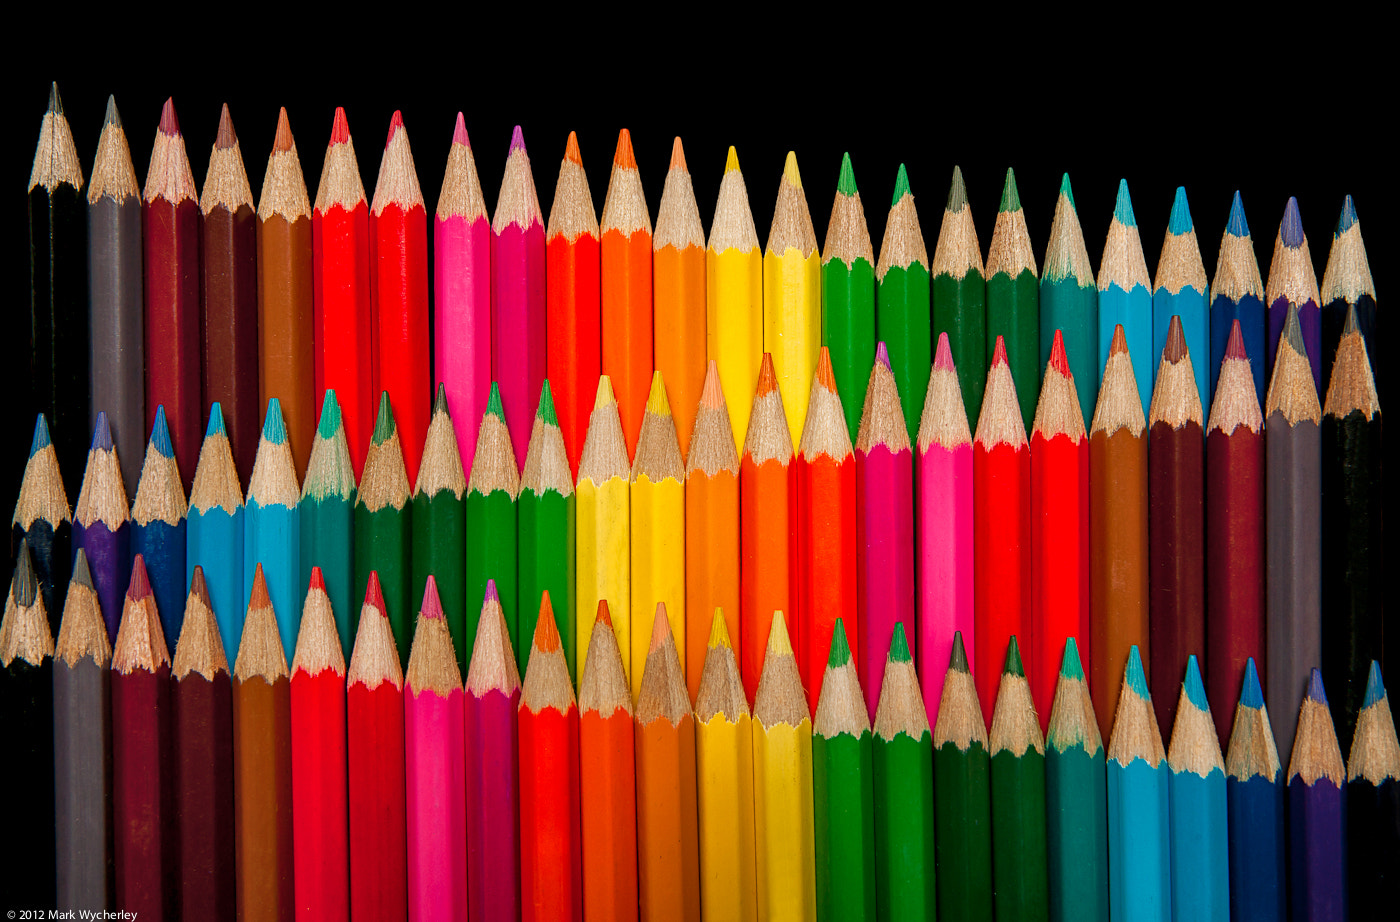 Photograph Pencils by Mark Wycherley on 500px